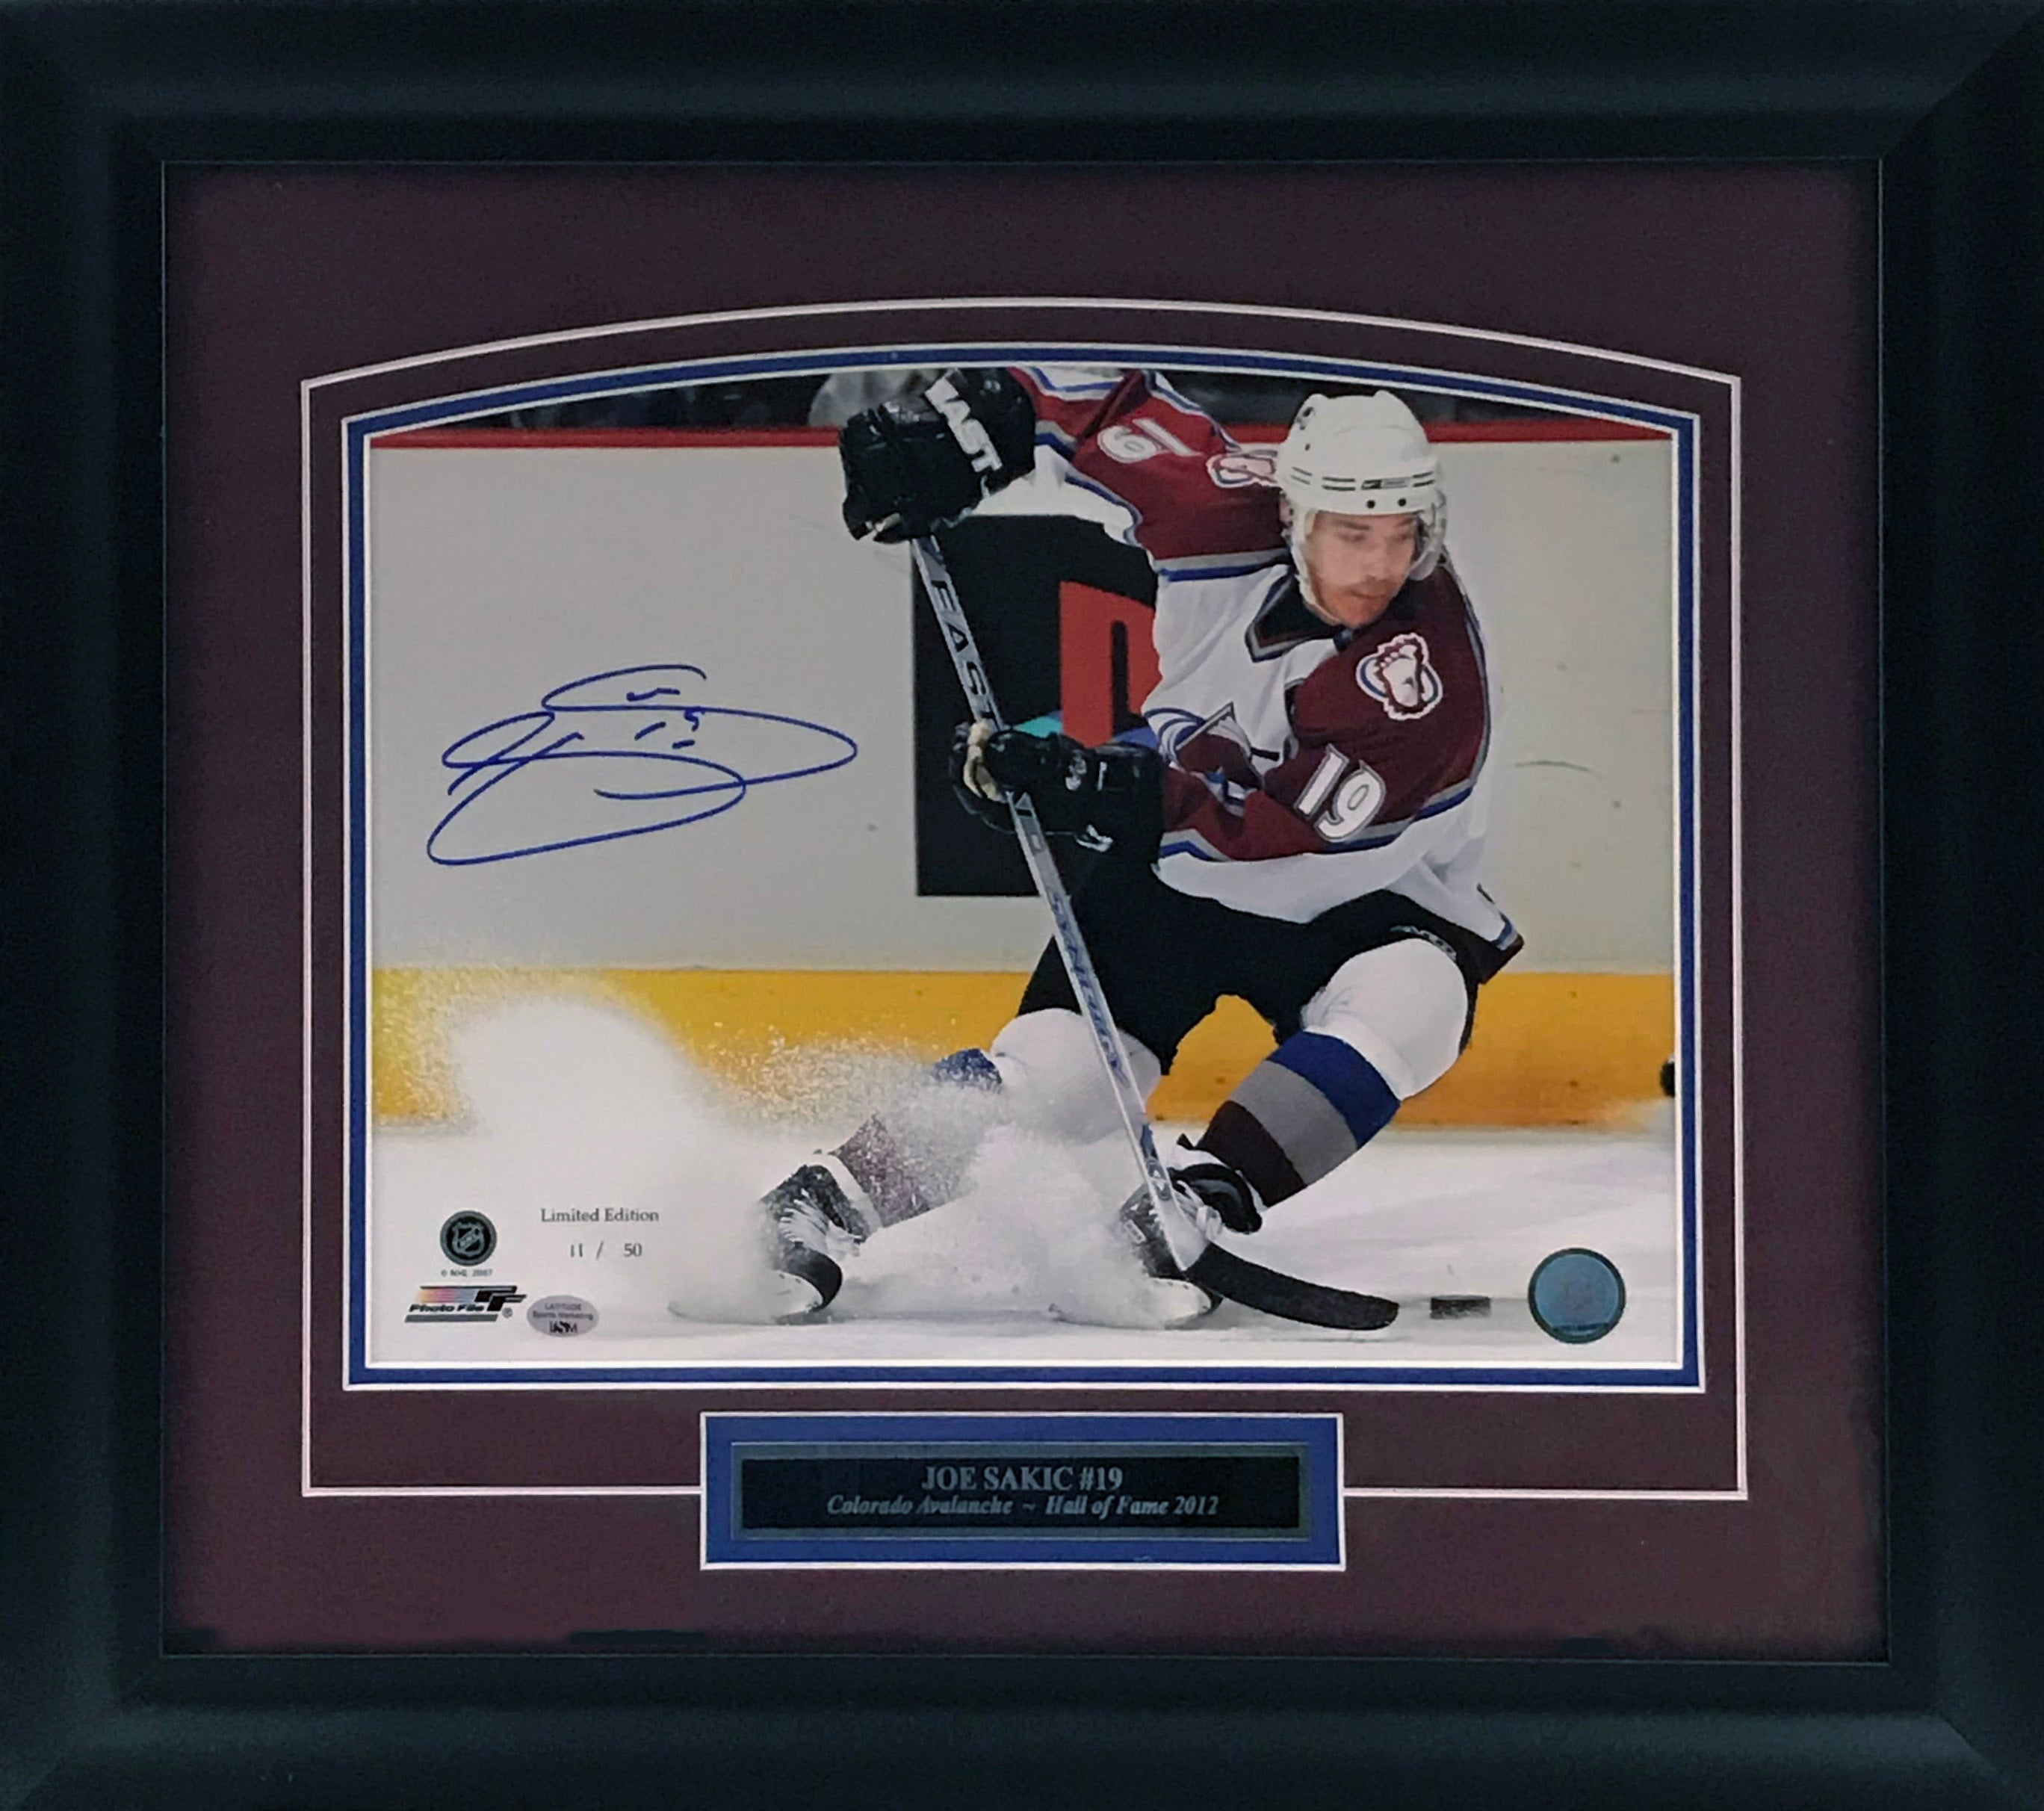 Joe Sakic Signed and Framed Limited Edition 8x10 Photo